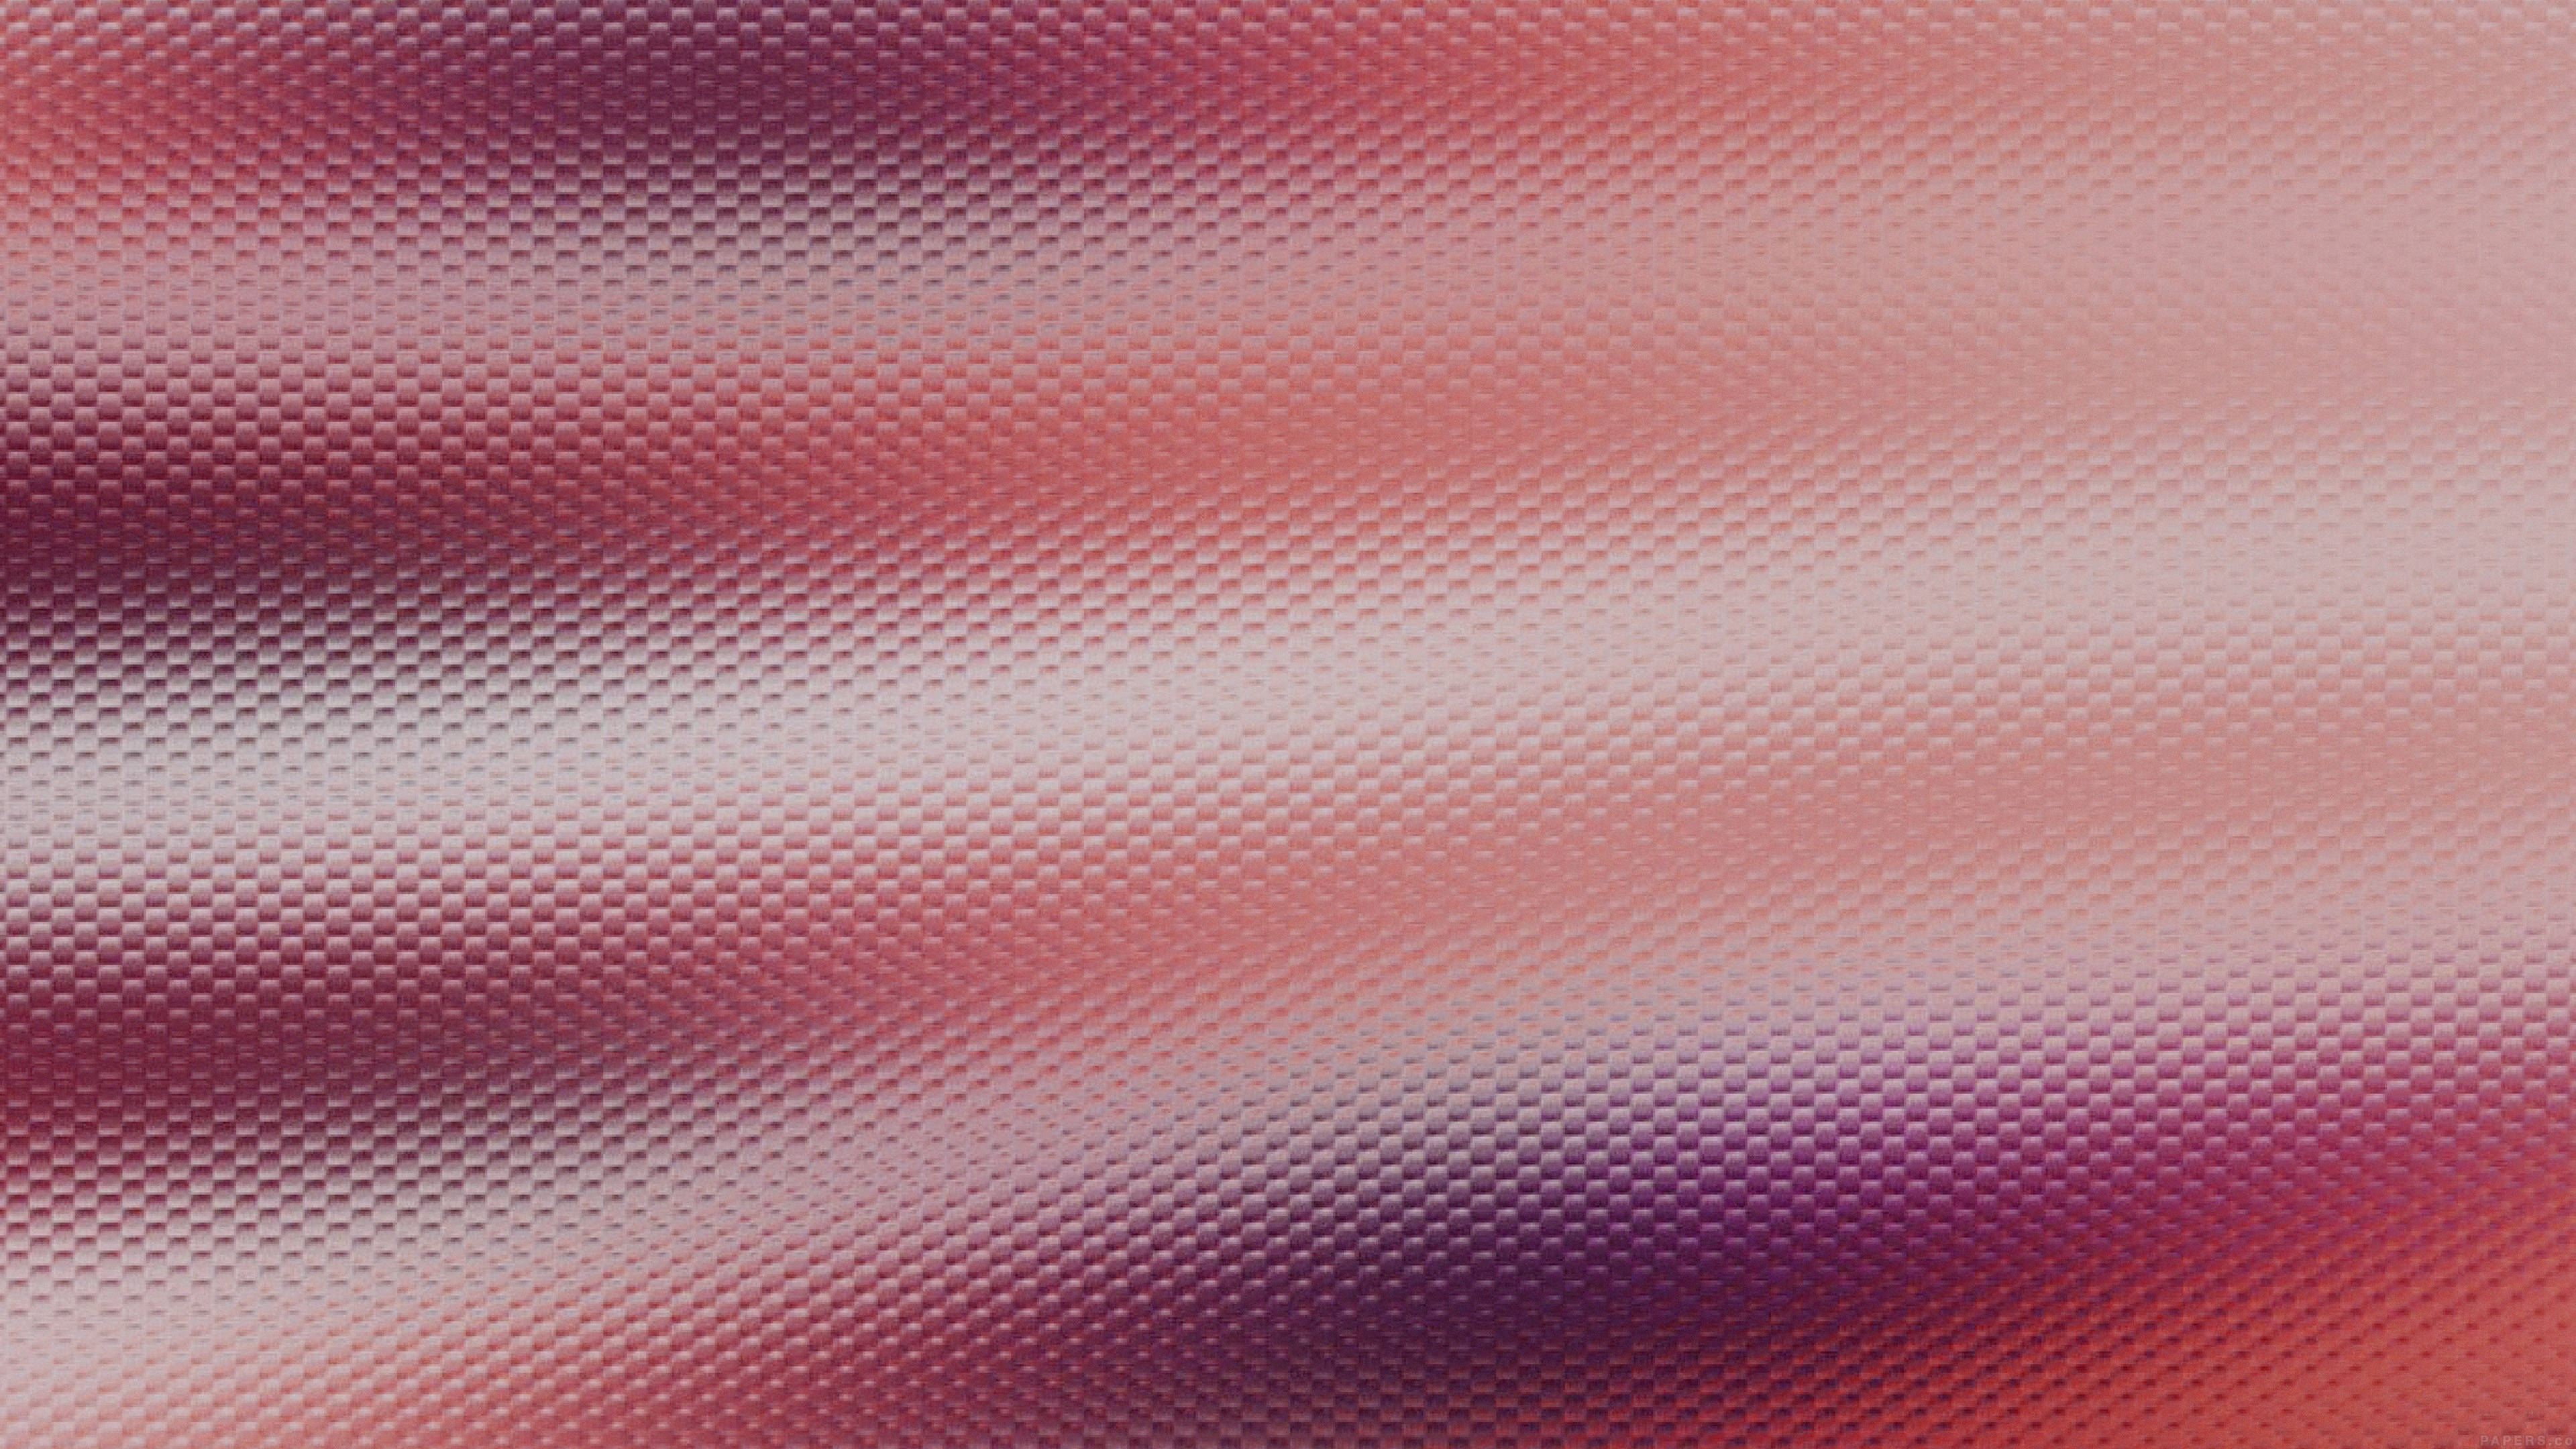 vh02-fabric-texture-red-pattern-wallpaper for Fabric Texture Pattern Hd  156eri